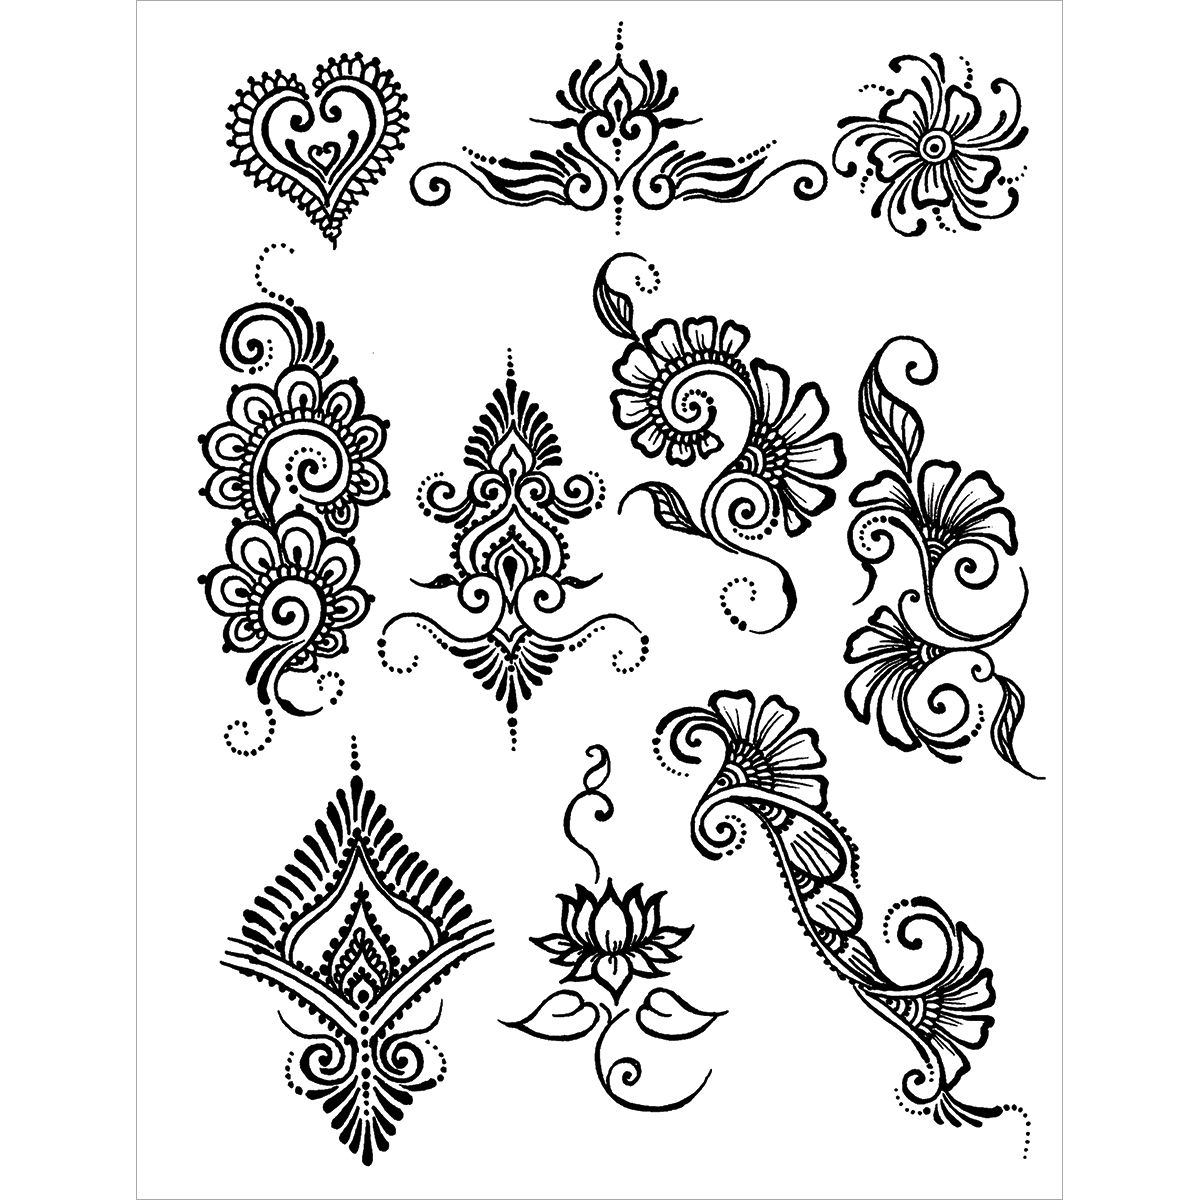 mehndi designs drawings - Google Search | Tattoos ...